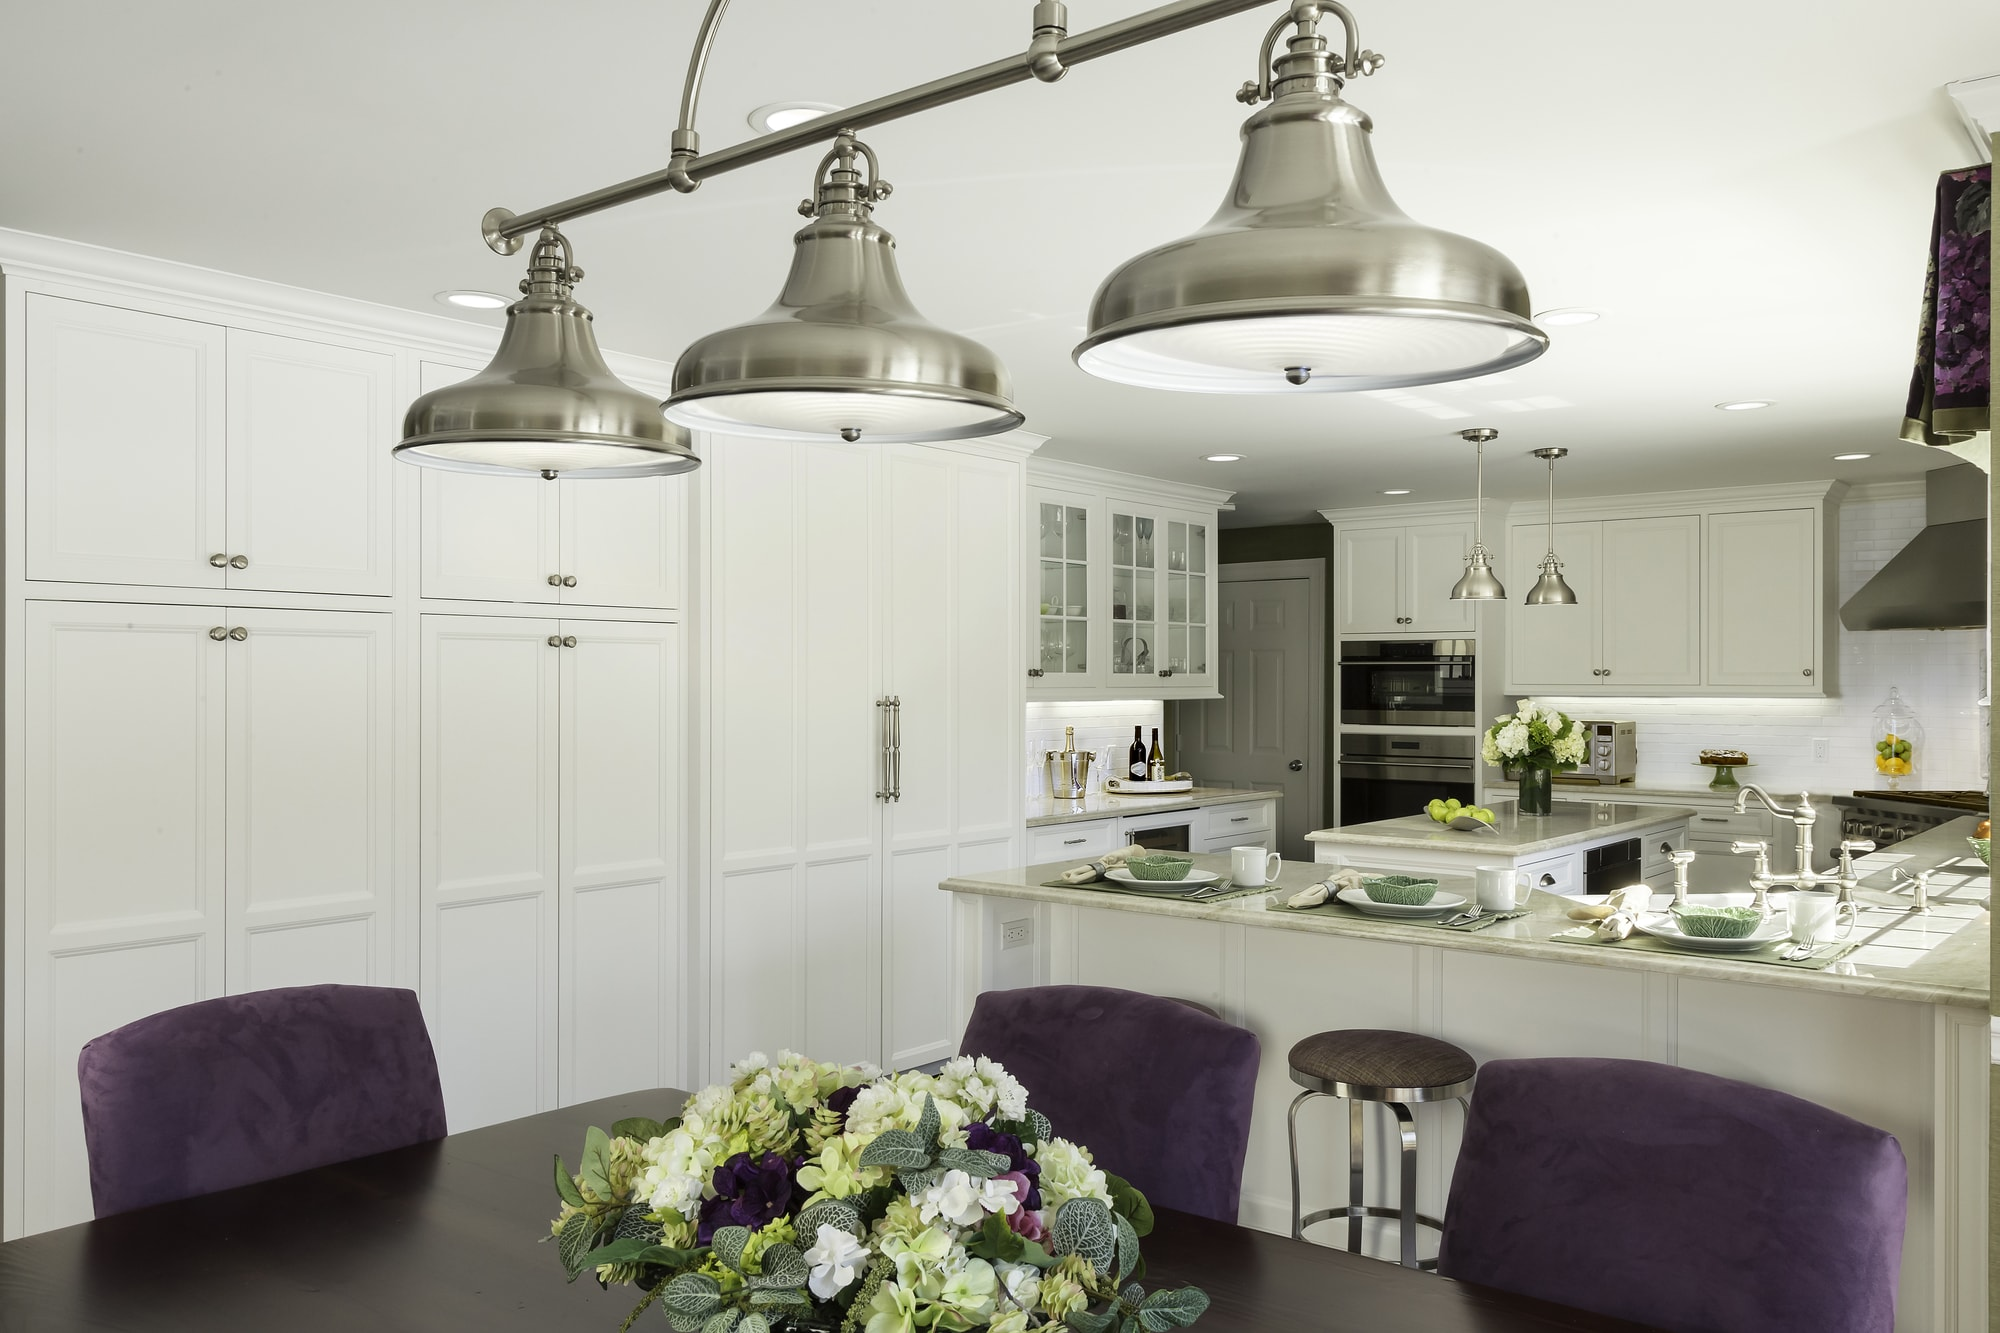 Transitional style kitchen with three pendant fixtures